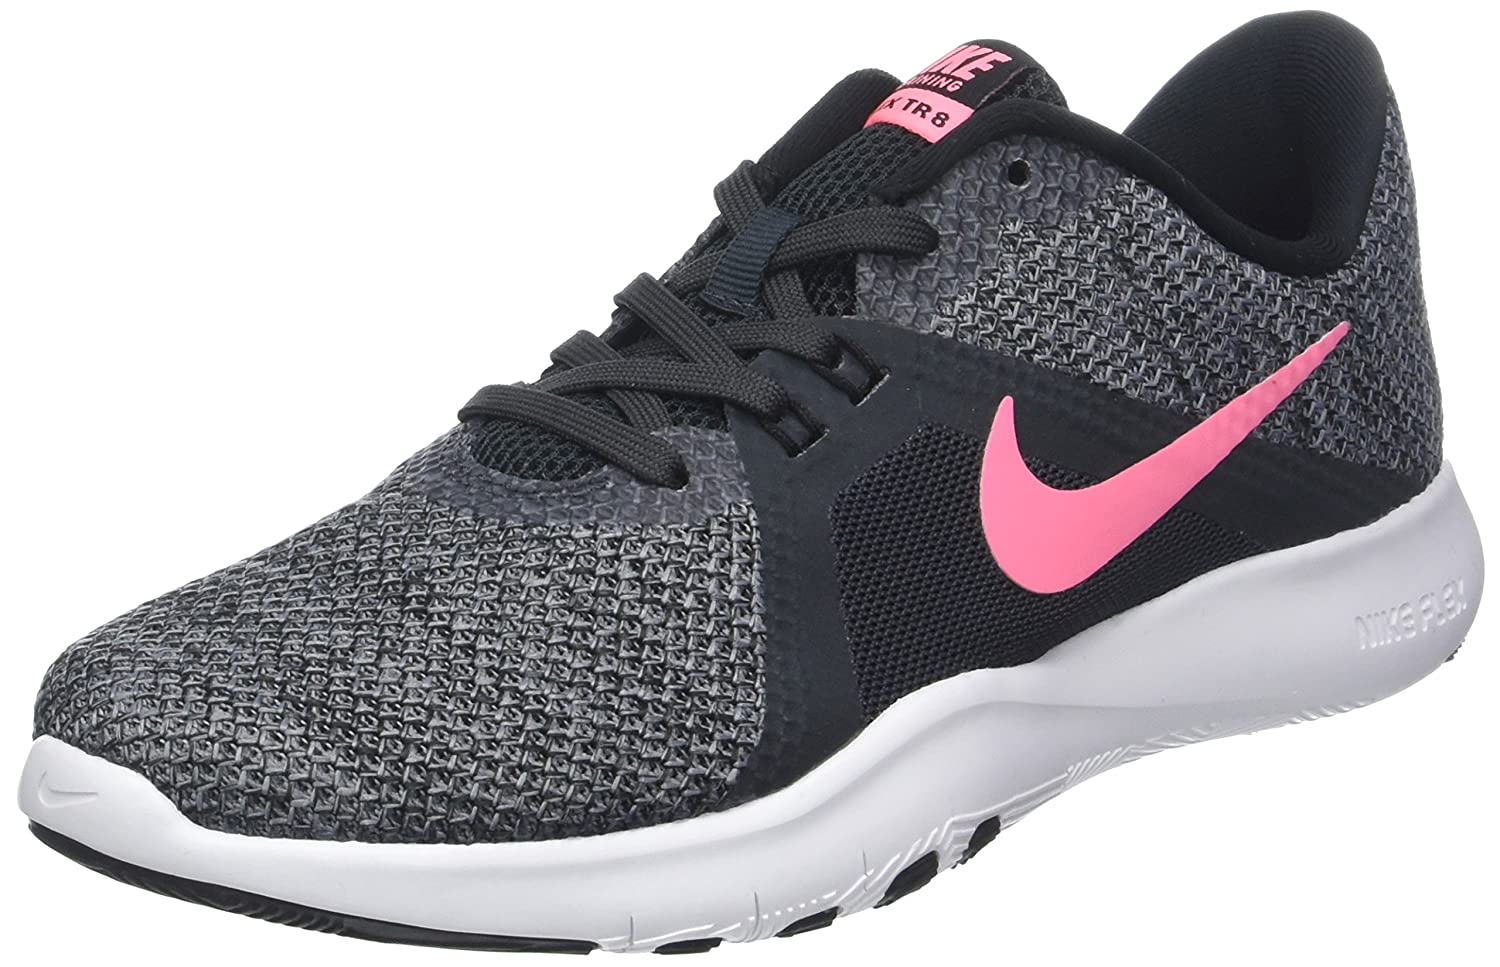 NIKE Women's Flex 8 Cross Trainer B0761YF83T 9.5 B(M) US|Anthracite/Sunset Pulse/Black